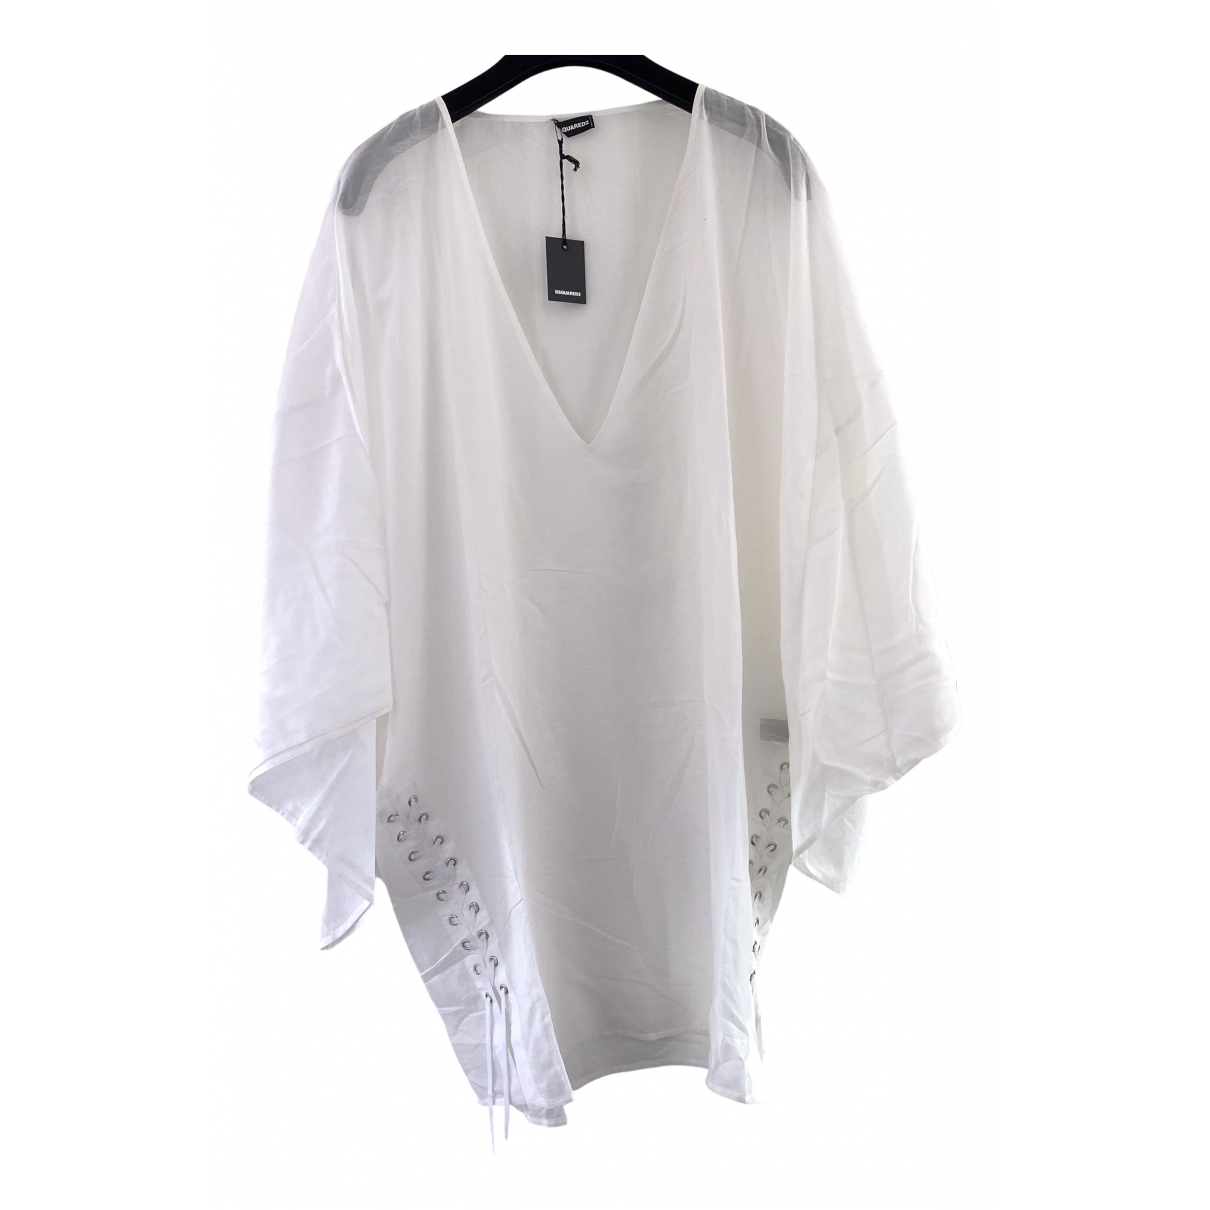 Dsquared2 \N White Cotton  top for Women XL International